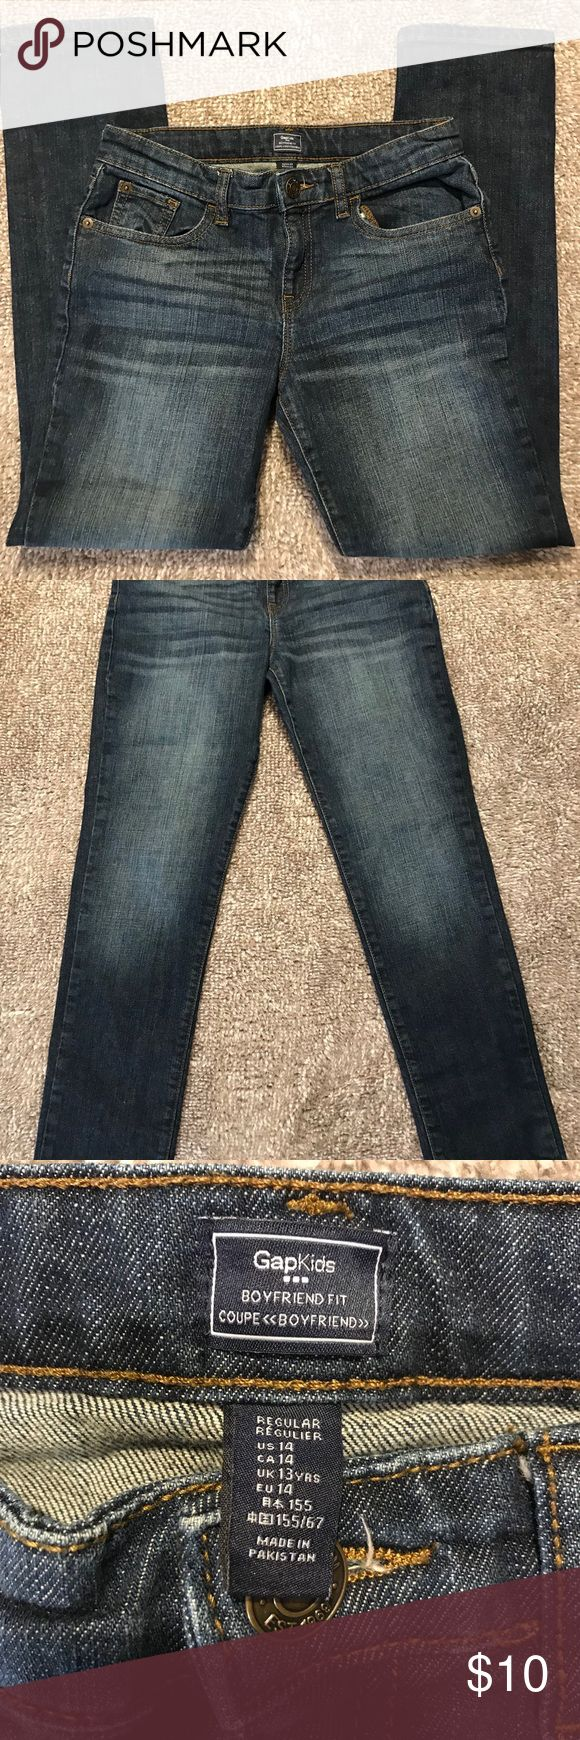 GAP KIDS BOYFRIEND FIT JEANS Dark wash. Size US 14. Boyfriend fit. Worn a few times. Great condition. GAP Bottoms Jeans